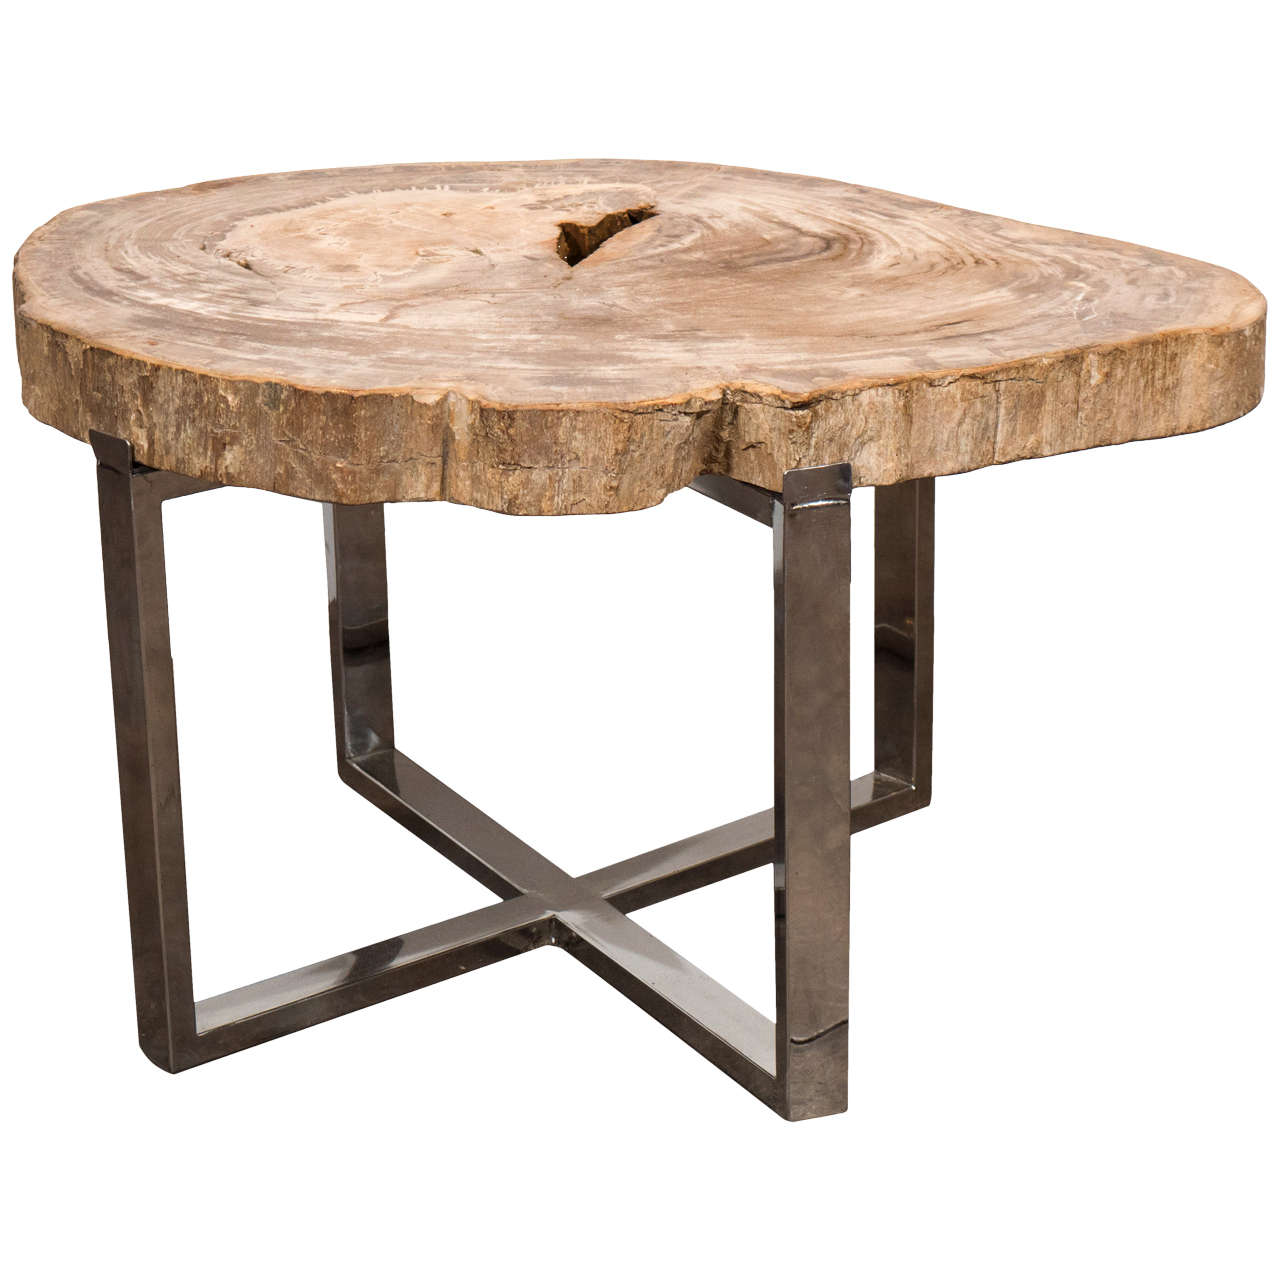 andrianna shamaris petrified wood slab with steel base for accent table quilted runners and placemats wrought iron legs trestle hampton bay furniture walnut bedside pub tops wine